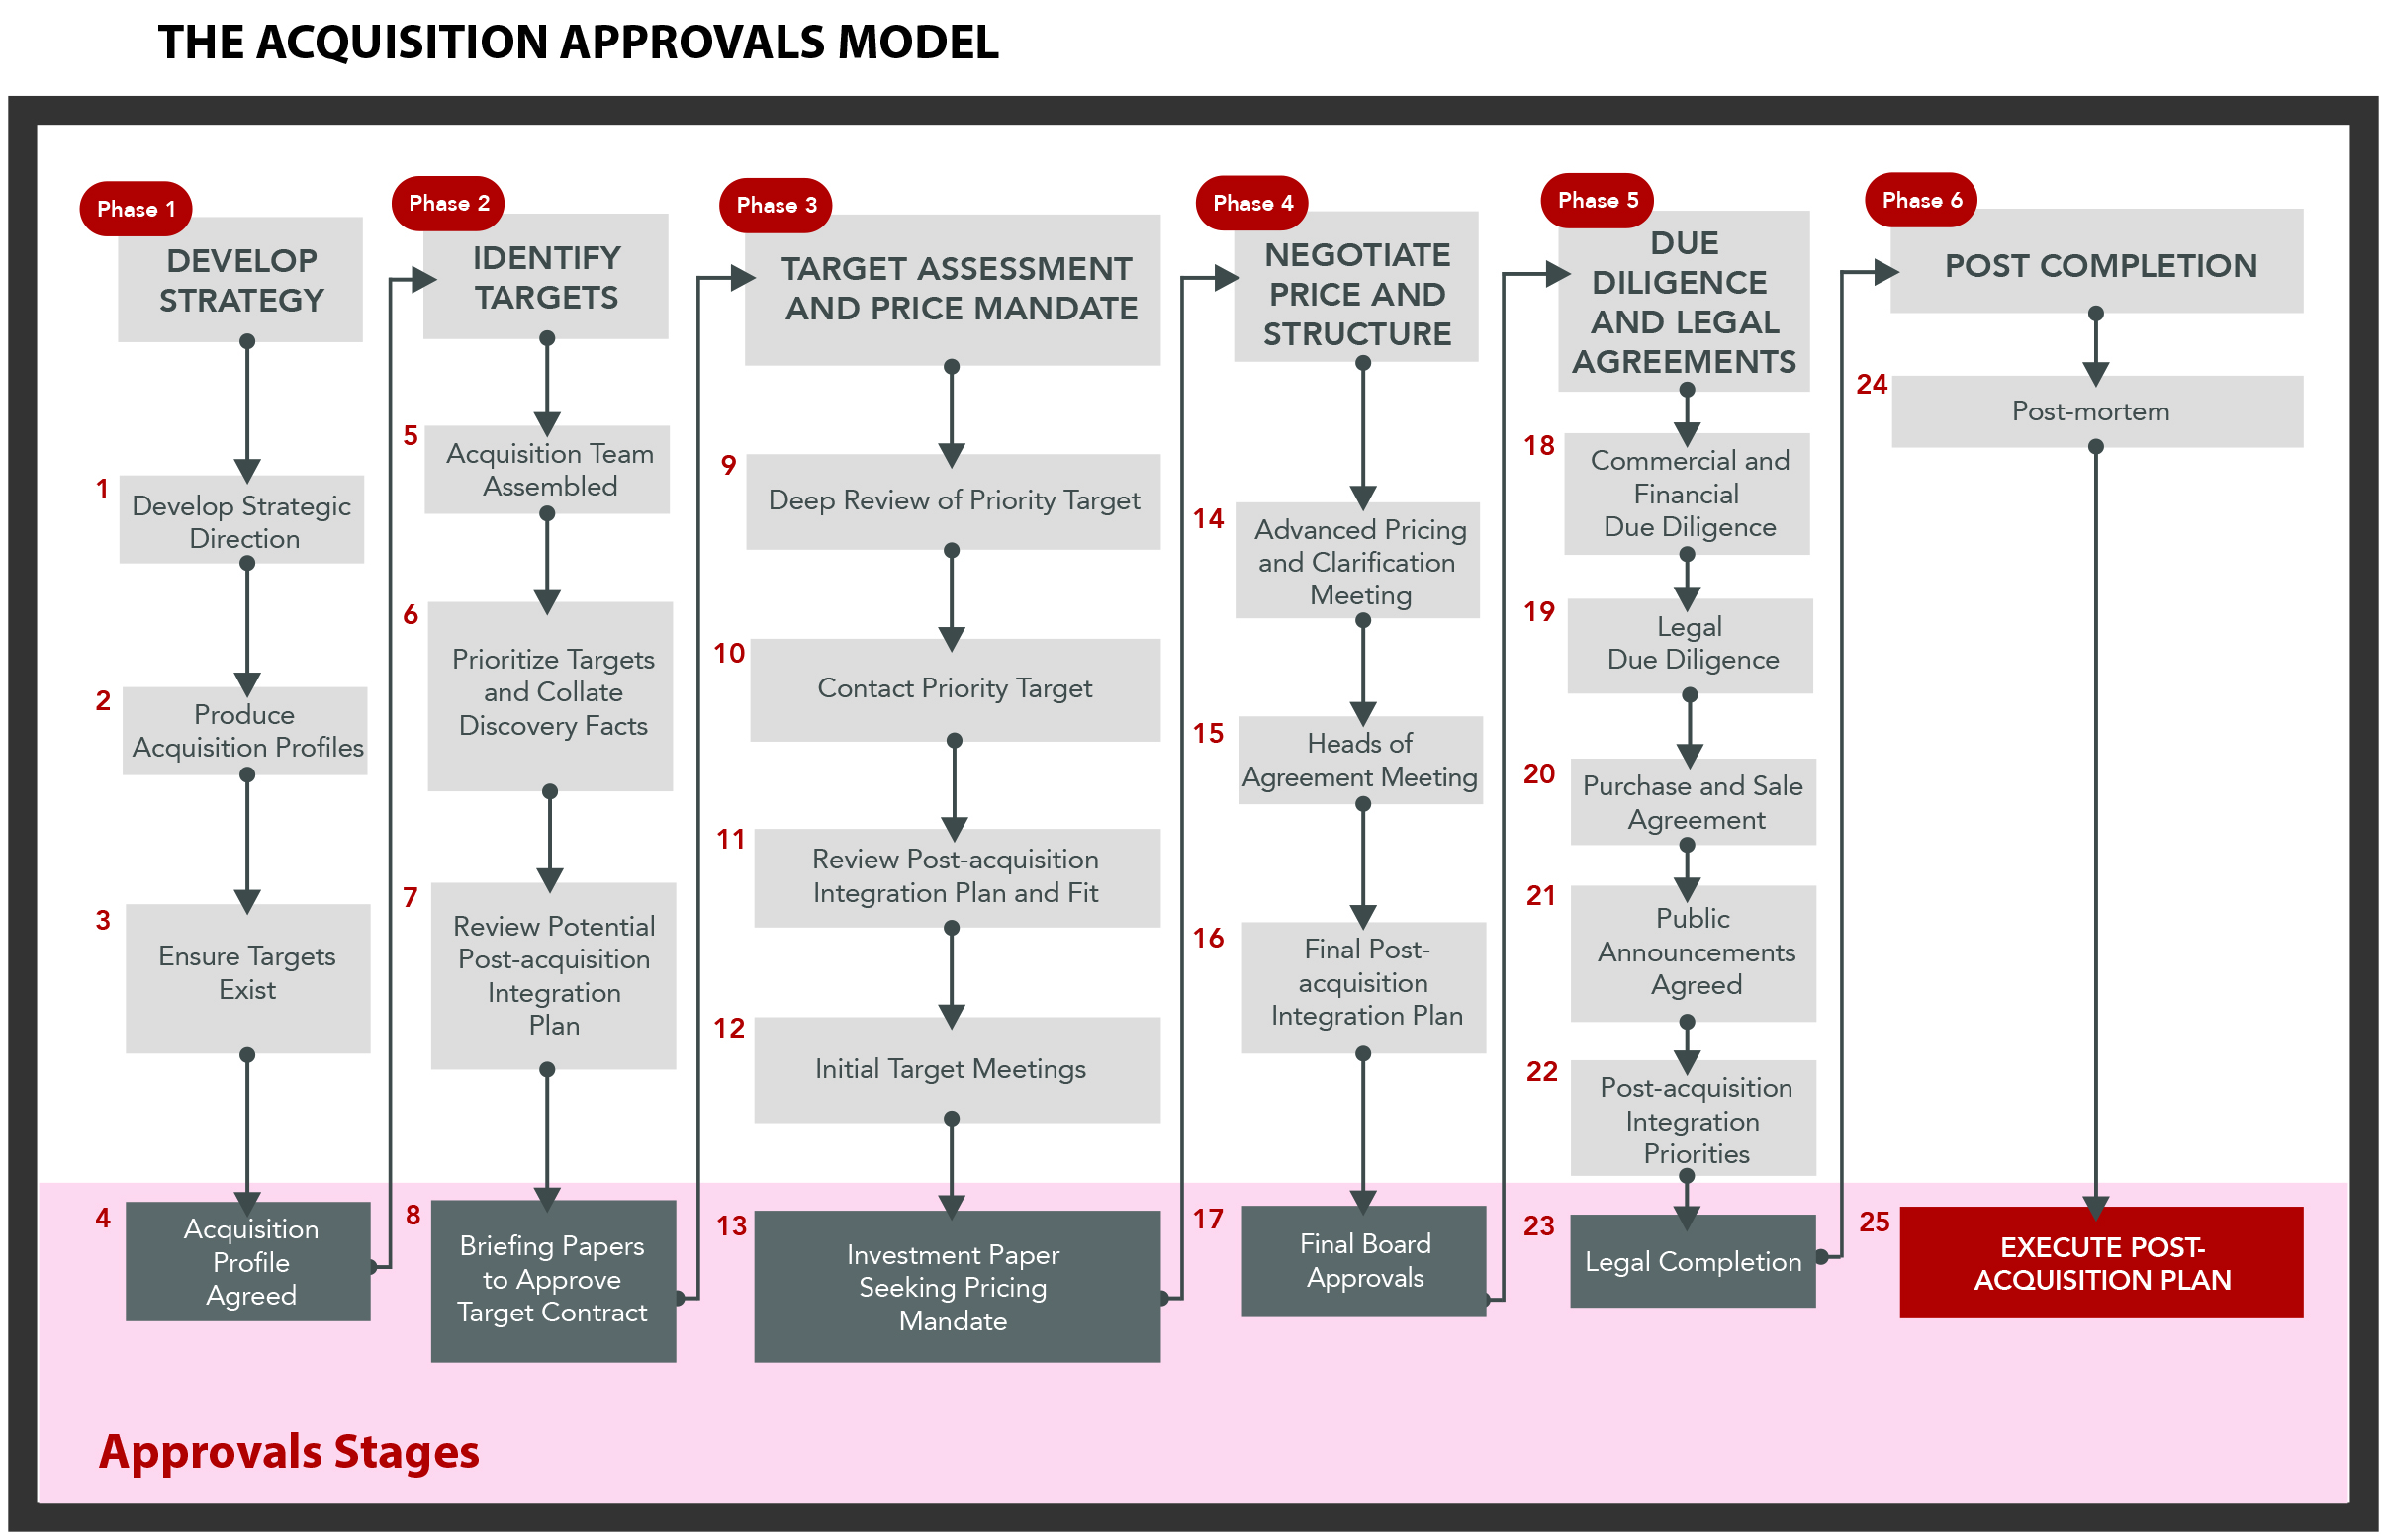 The Acquisition Approvals Model